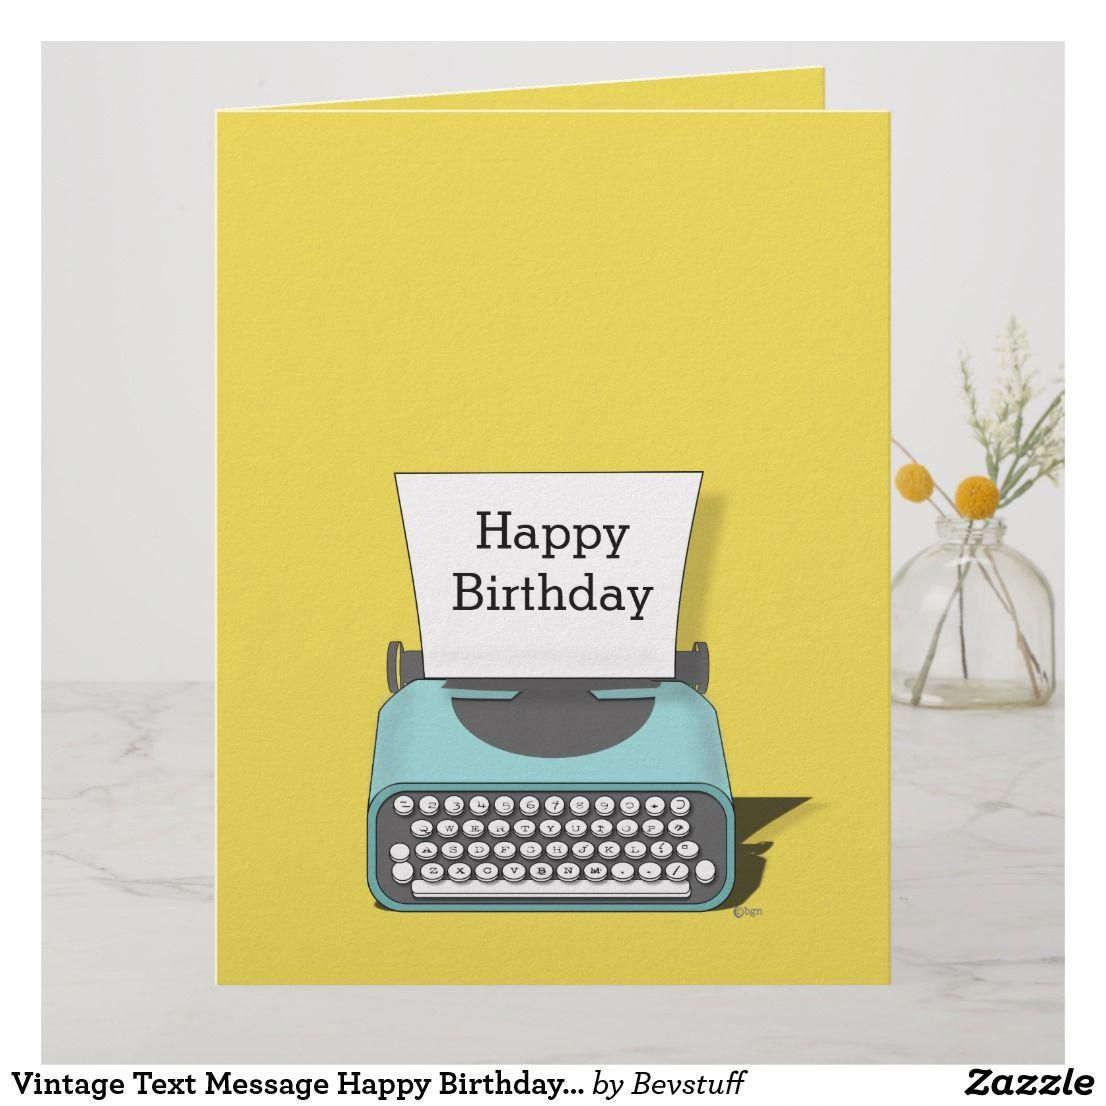 Vintage Text Message Happy Birthday Humor Card Lovetextmessages Happy Birthday Funny I Love You Text Funny Birthday Cards